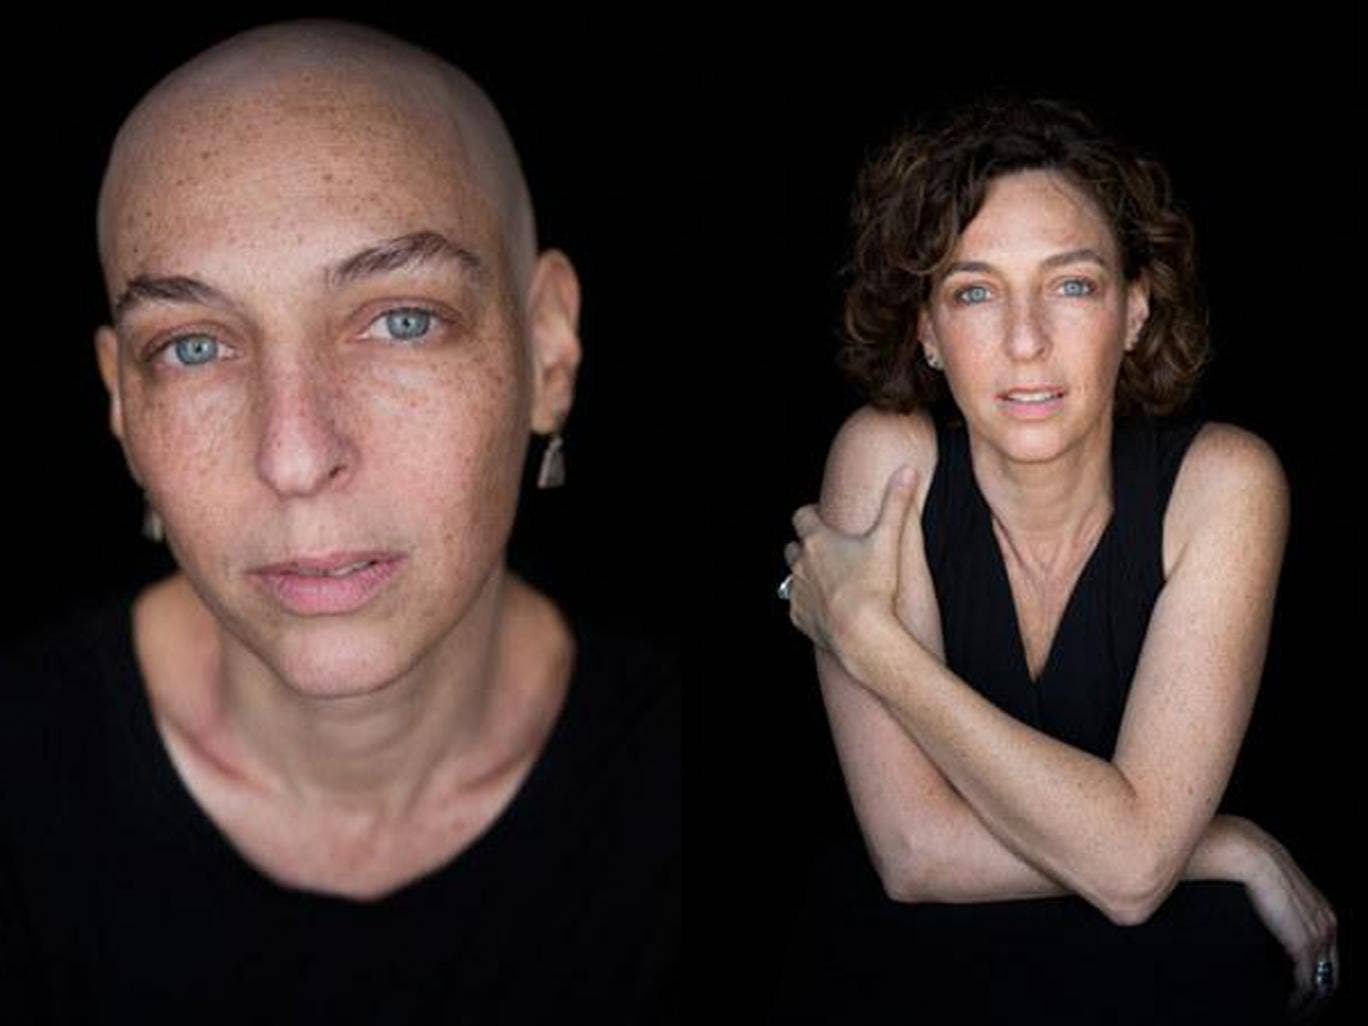 cancer patient dating website My dating profile says i'm a breast cancer survivor by says laurie davis edwards, founder of the online dating-coaching service eflirt.